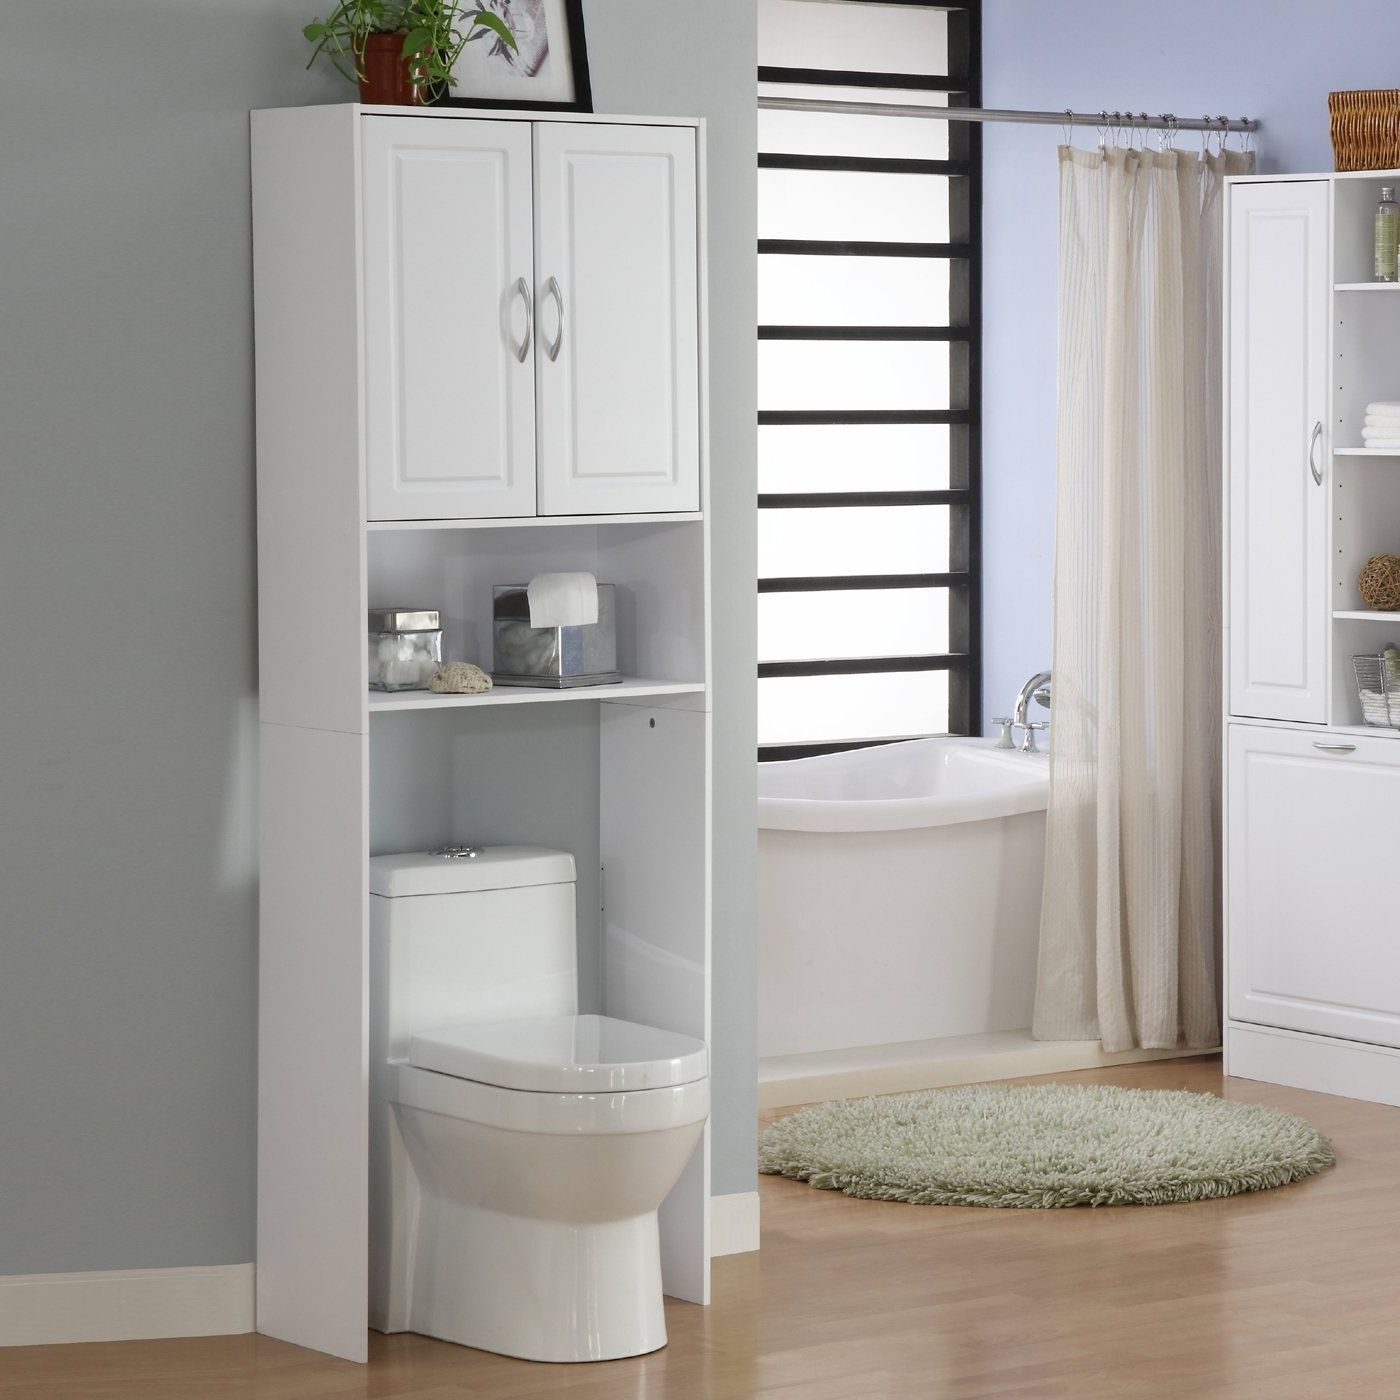 10 Coolest Bathroom Storage Ideas For An Efficient Home   Bathroom Storage  , Bathroom Storage Cabinet , Small Bathroom Storage Ideas , Bathroom Storage  Over ...